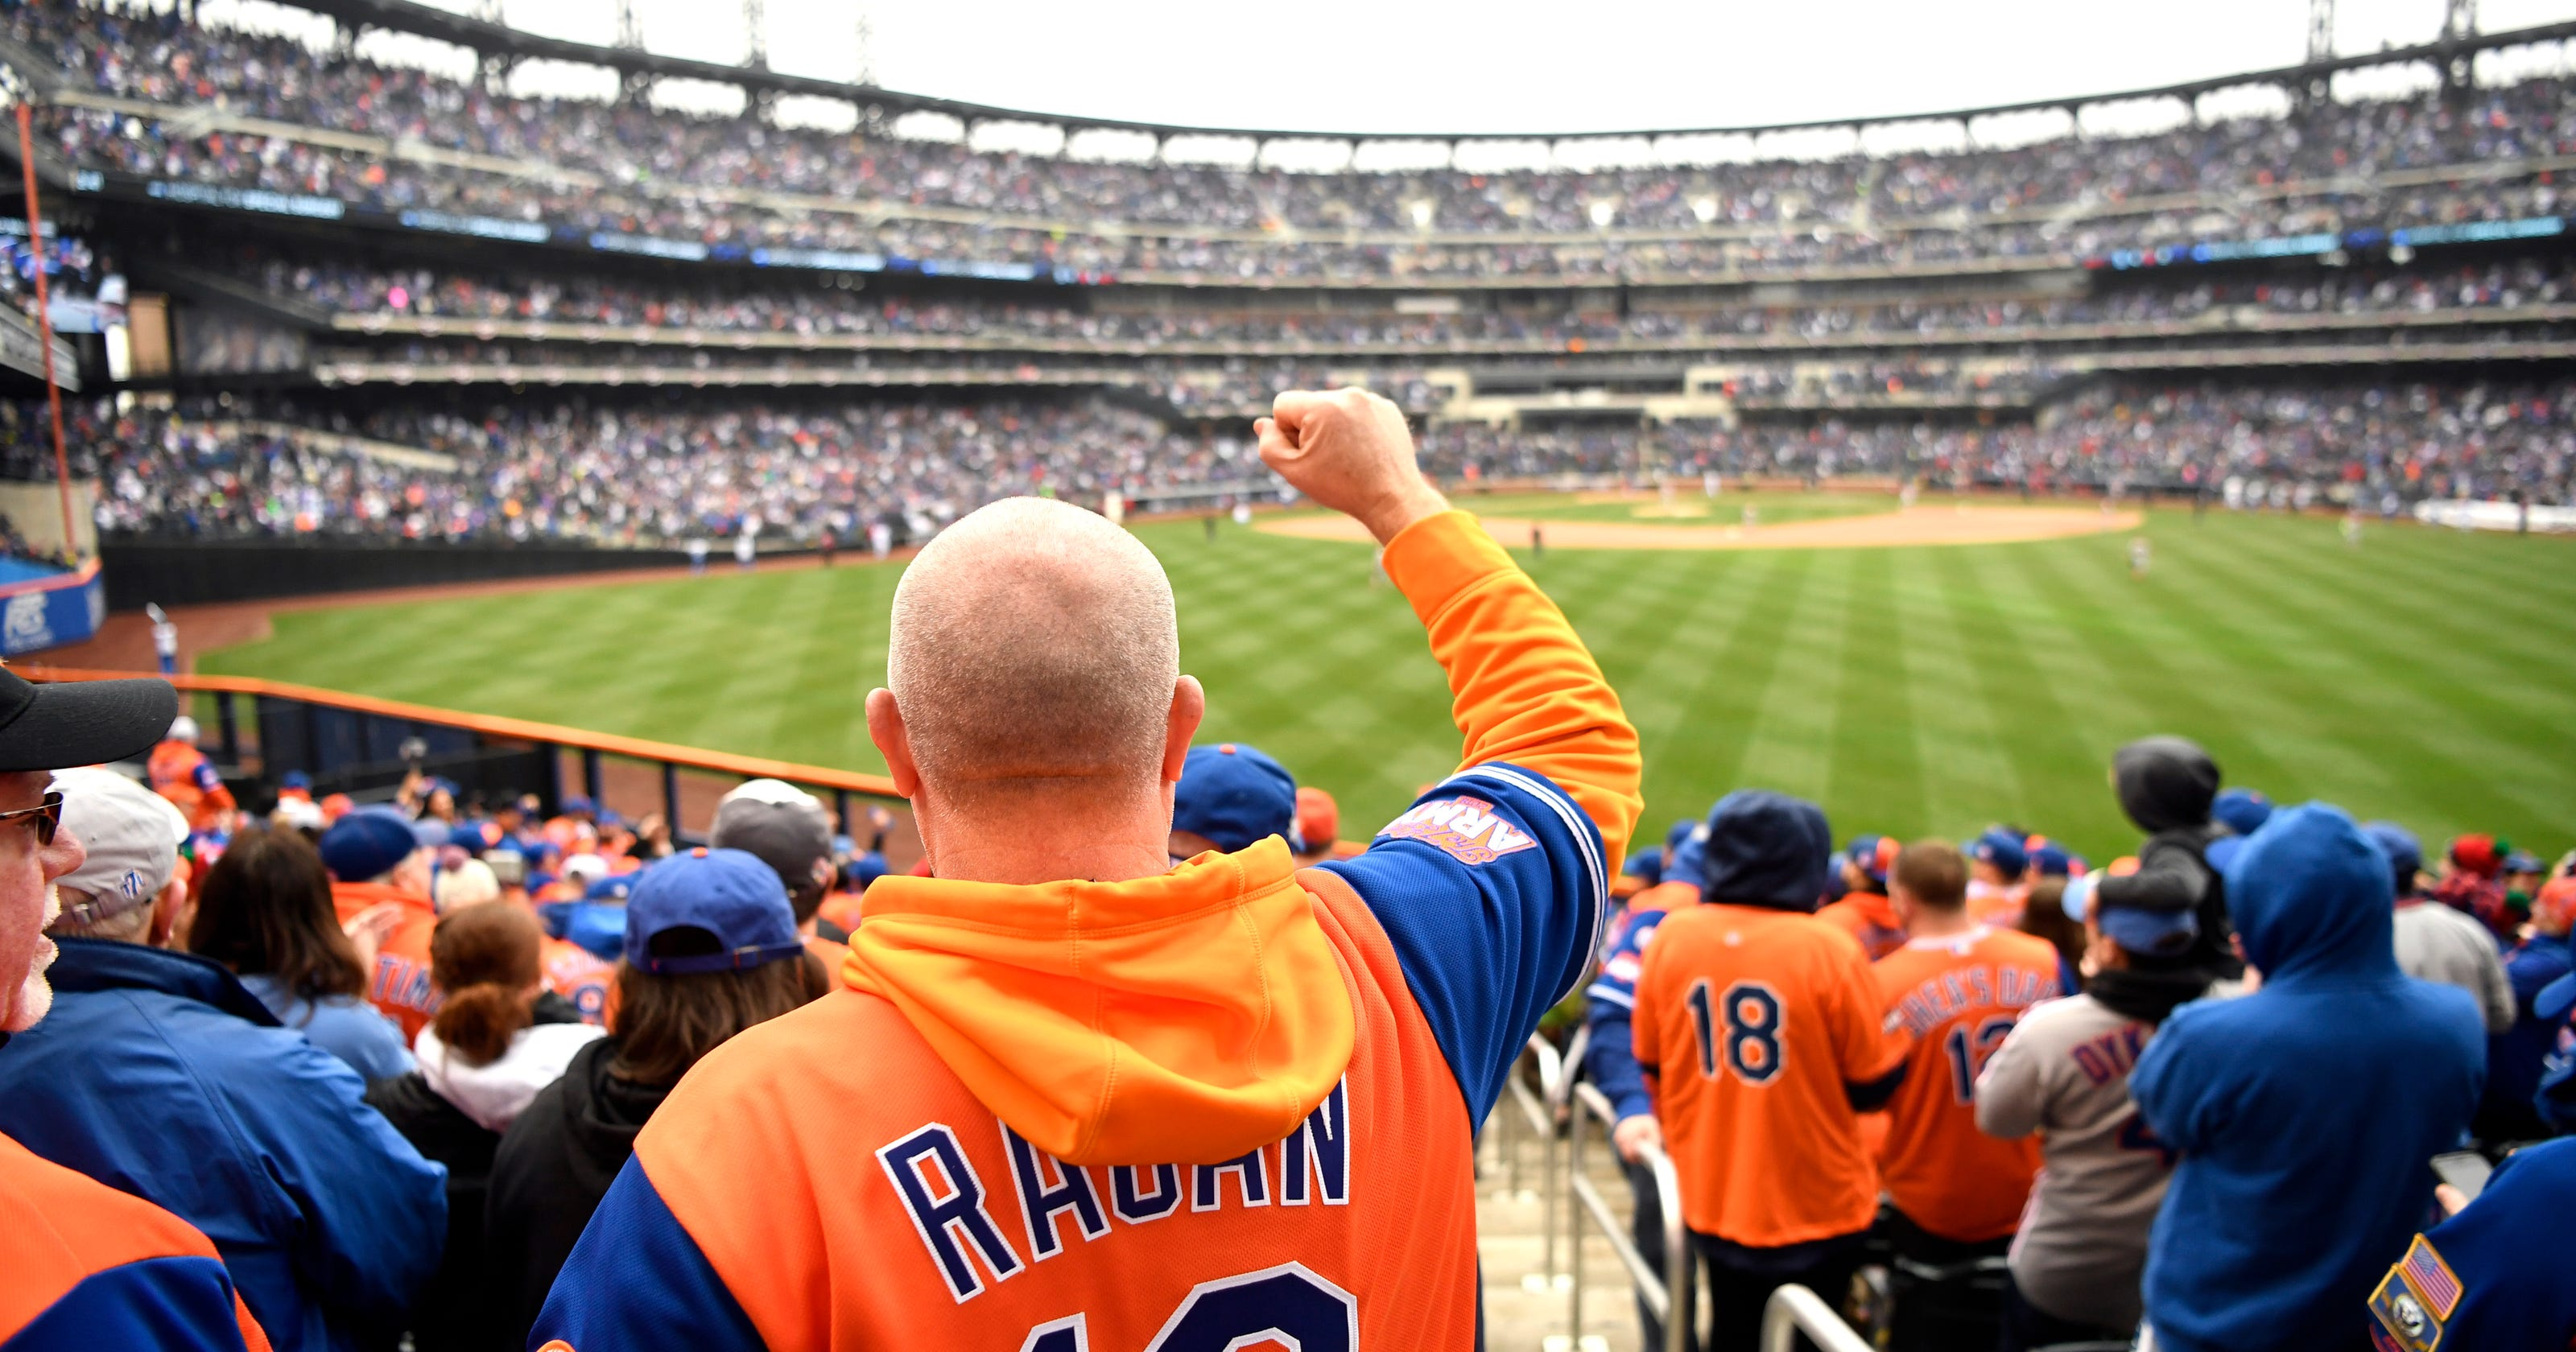 NY Mets vs  Phillies game postponed due to weather